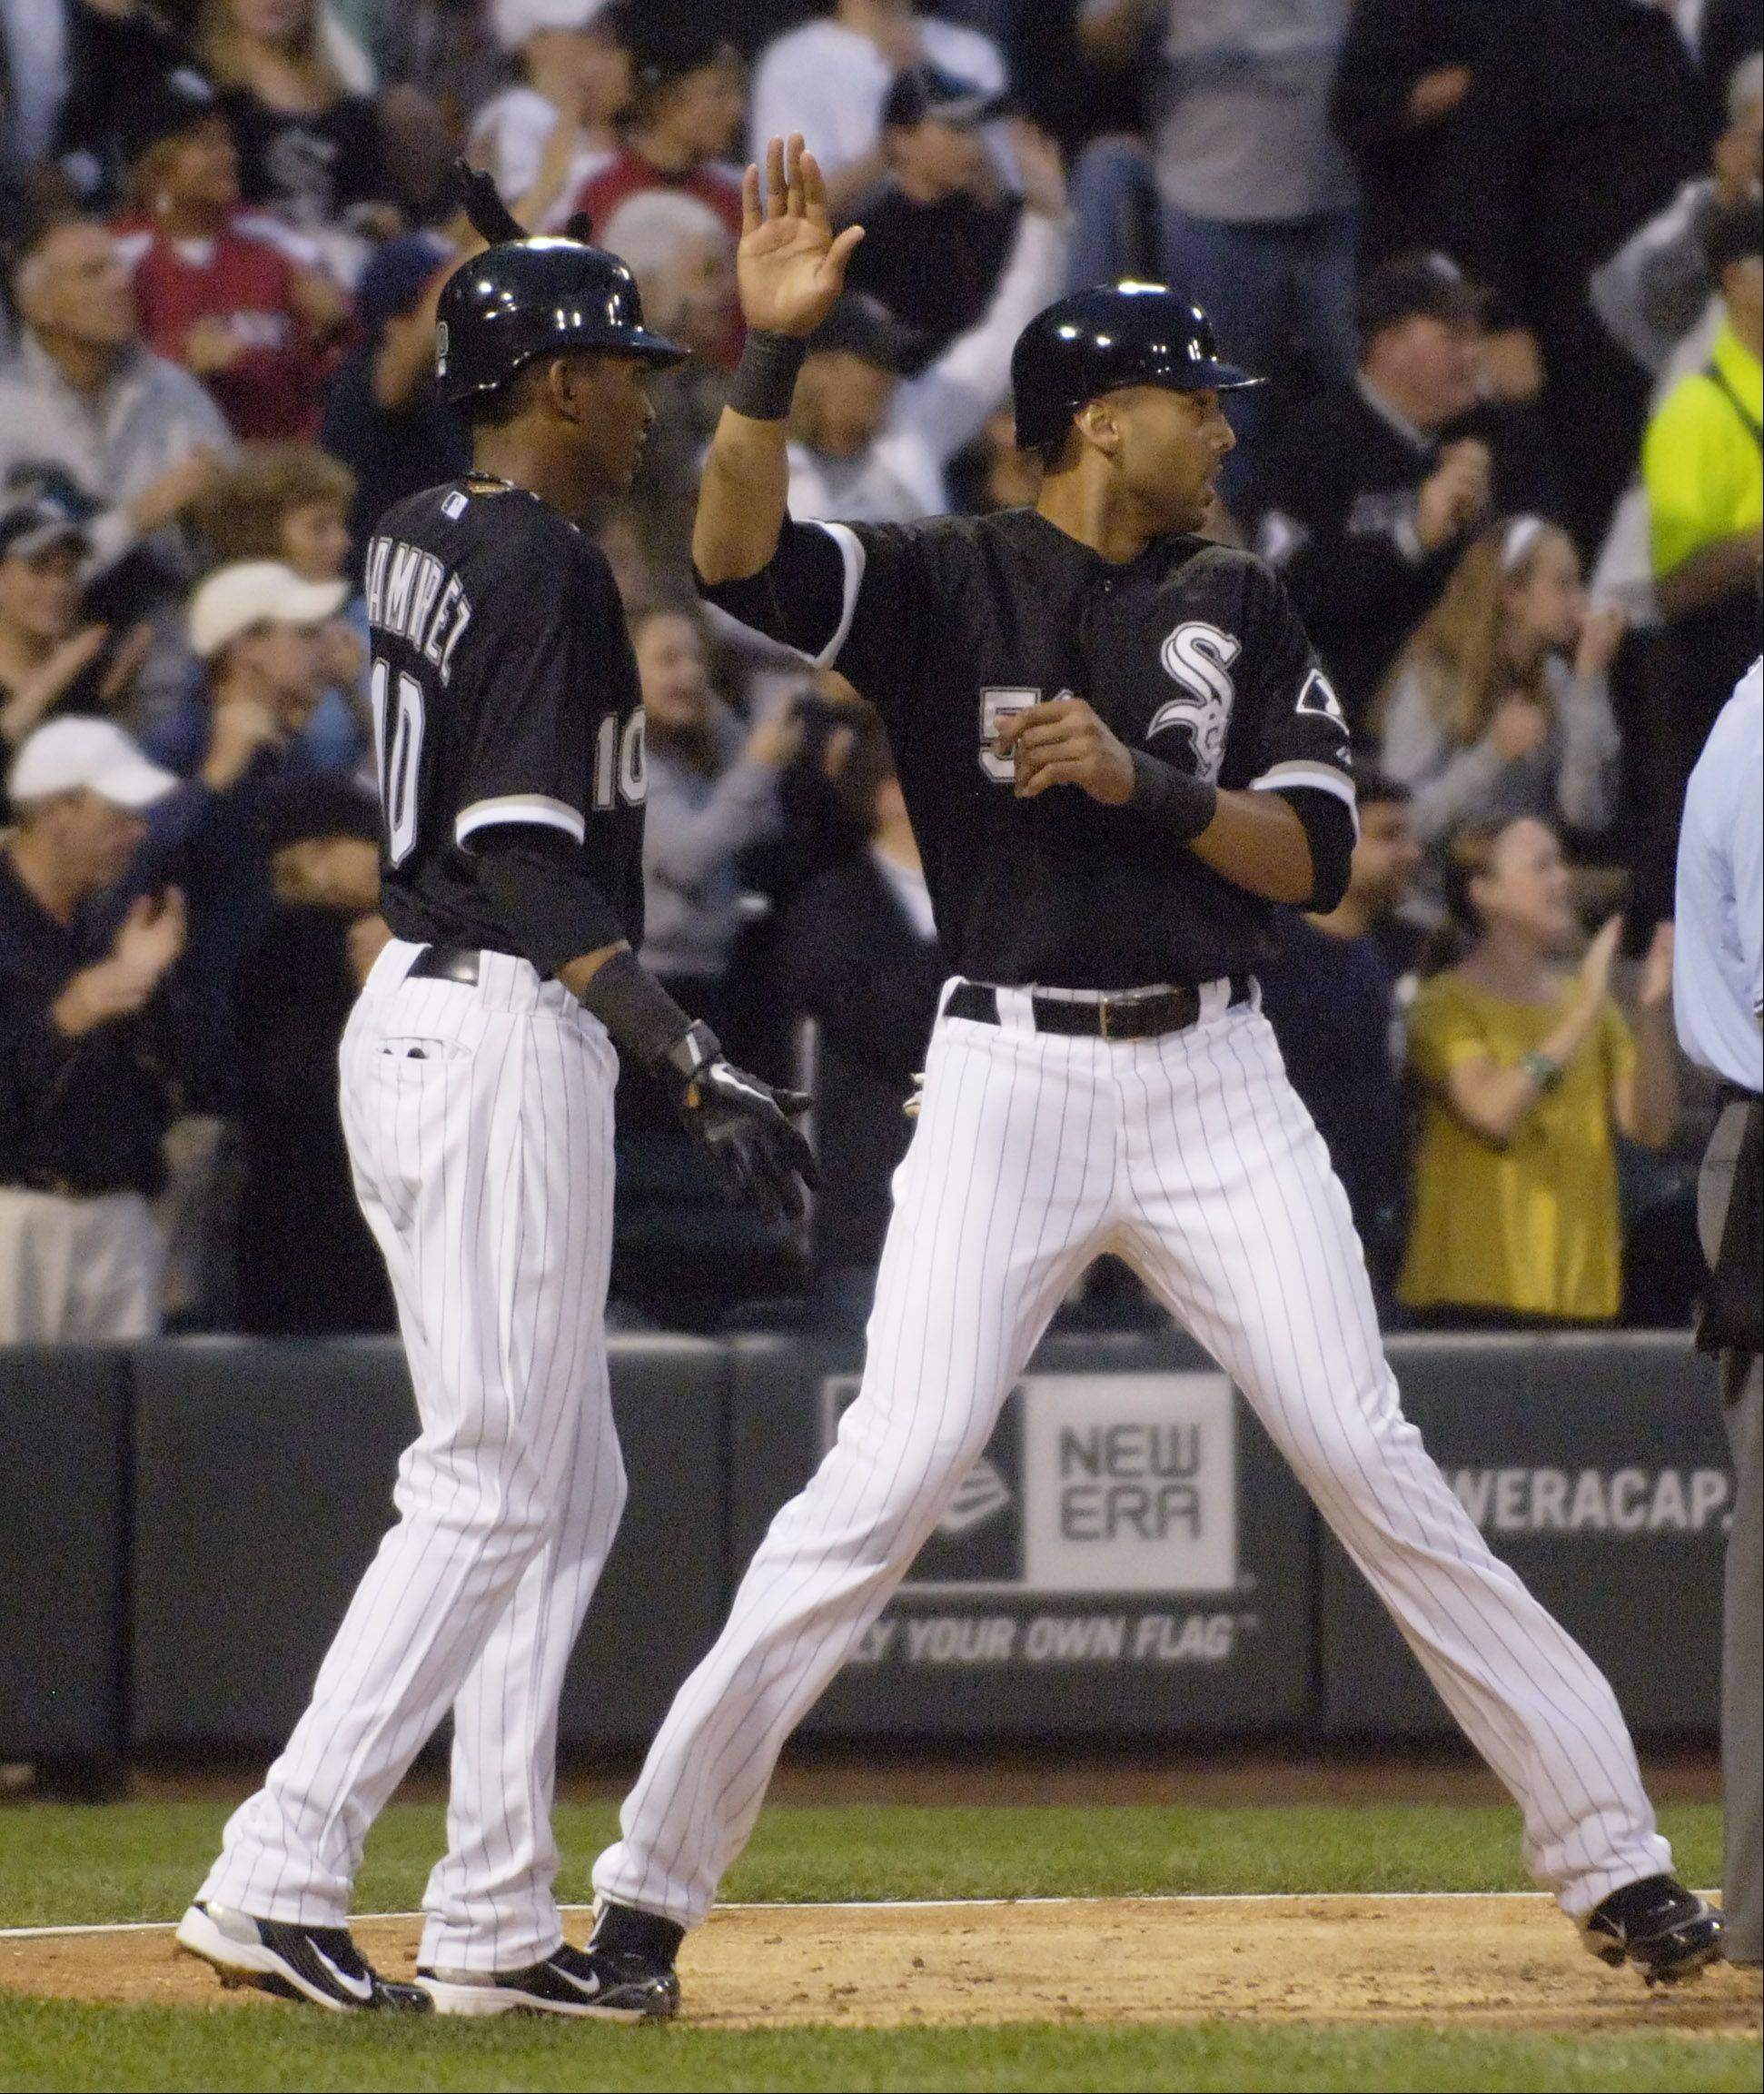 Alexei Ramirez, left, and Alex Rios greet one another at the plate after scoring on A.J. Pierzynski's triple during Wednesday's game against the Cubs at U.S. Cellular Field.